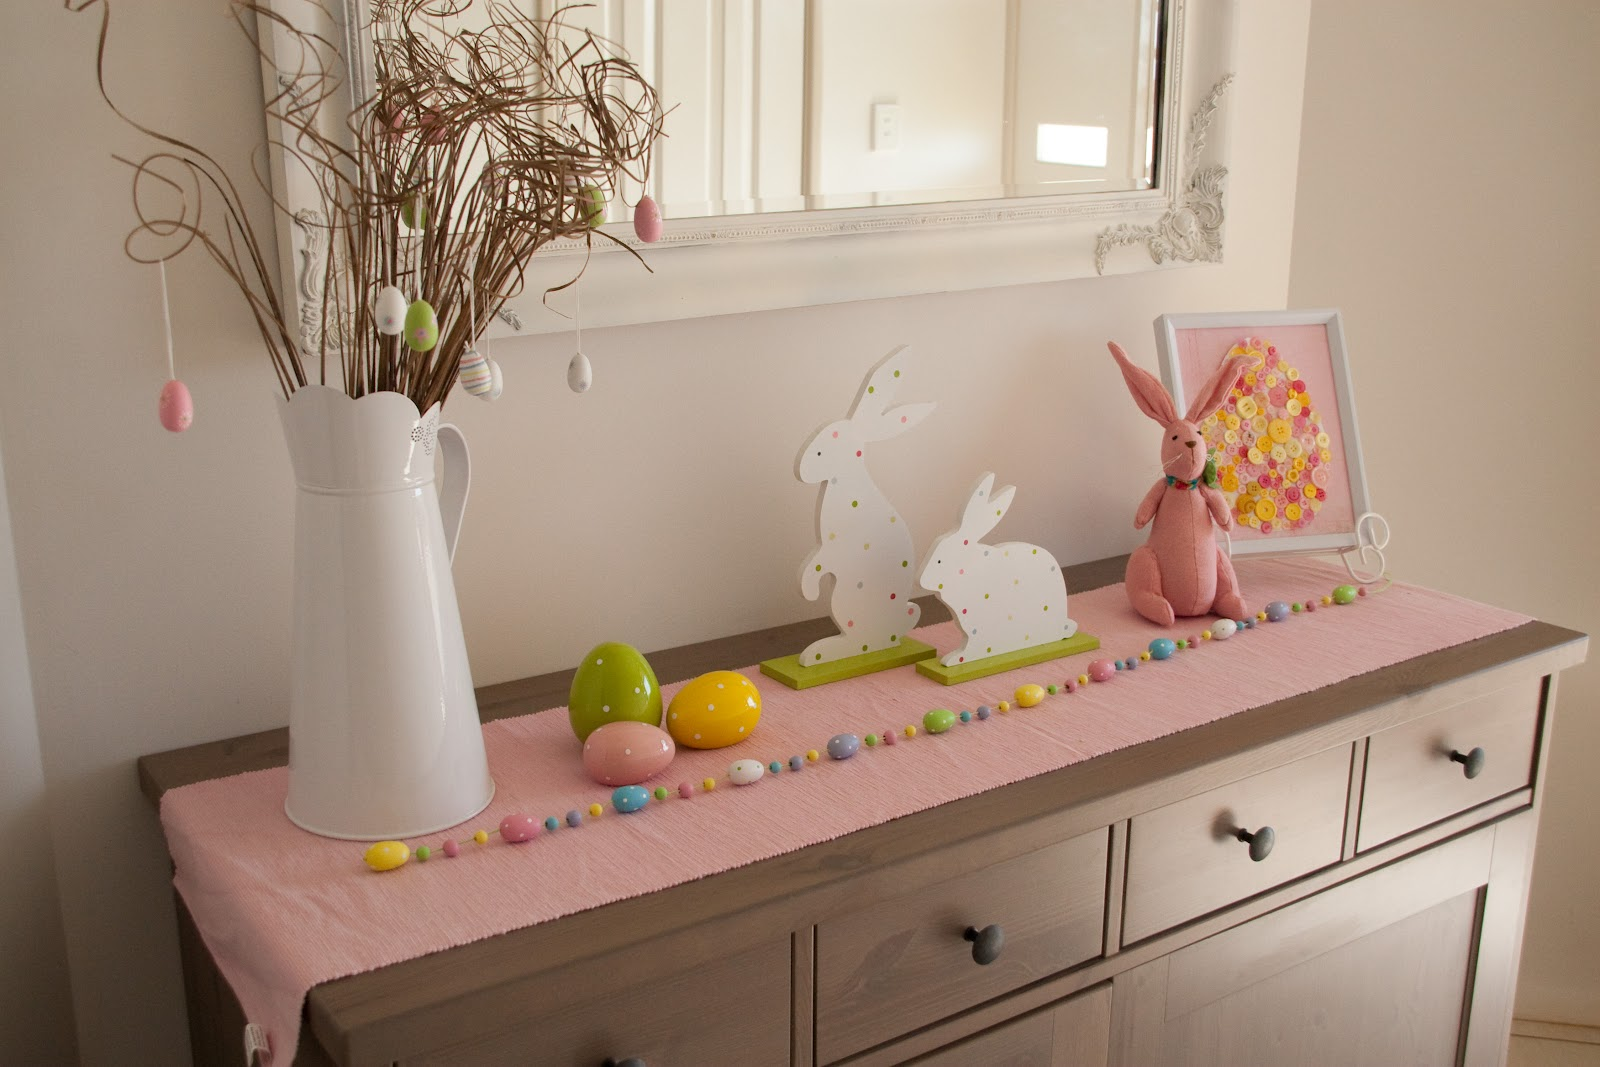 Http Bizzydayz Blogspot Com 2012 03 Easter Decor Html